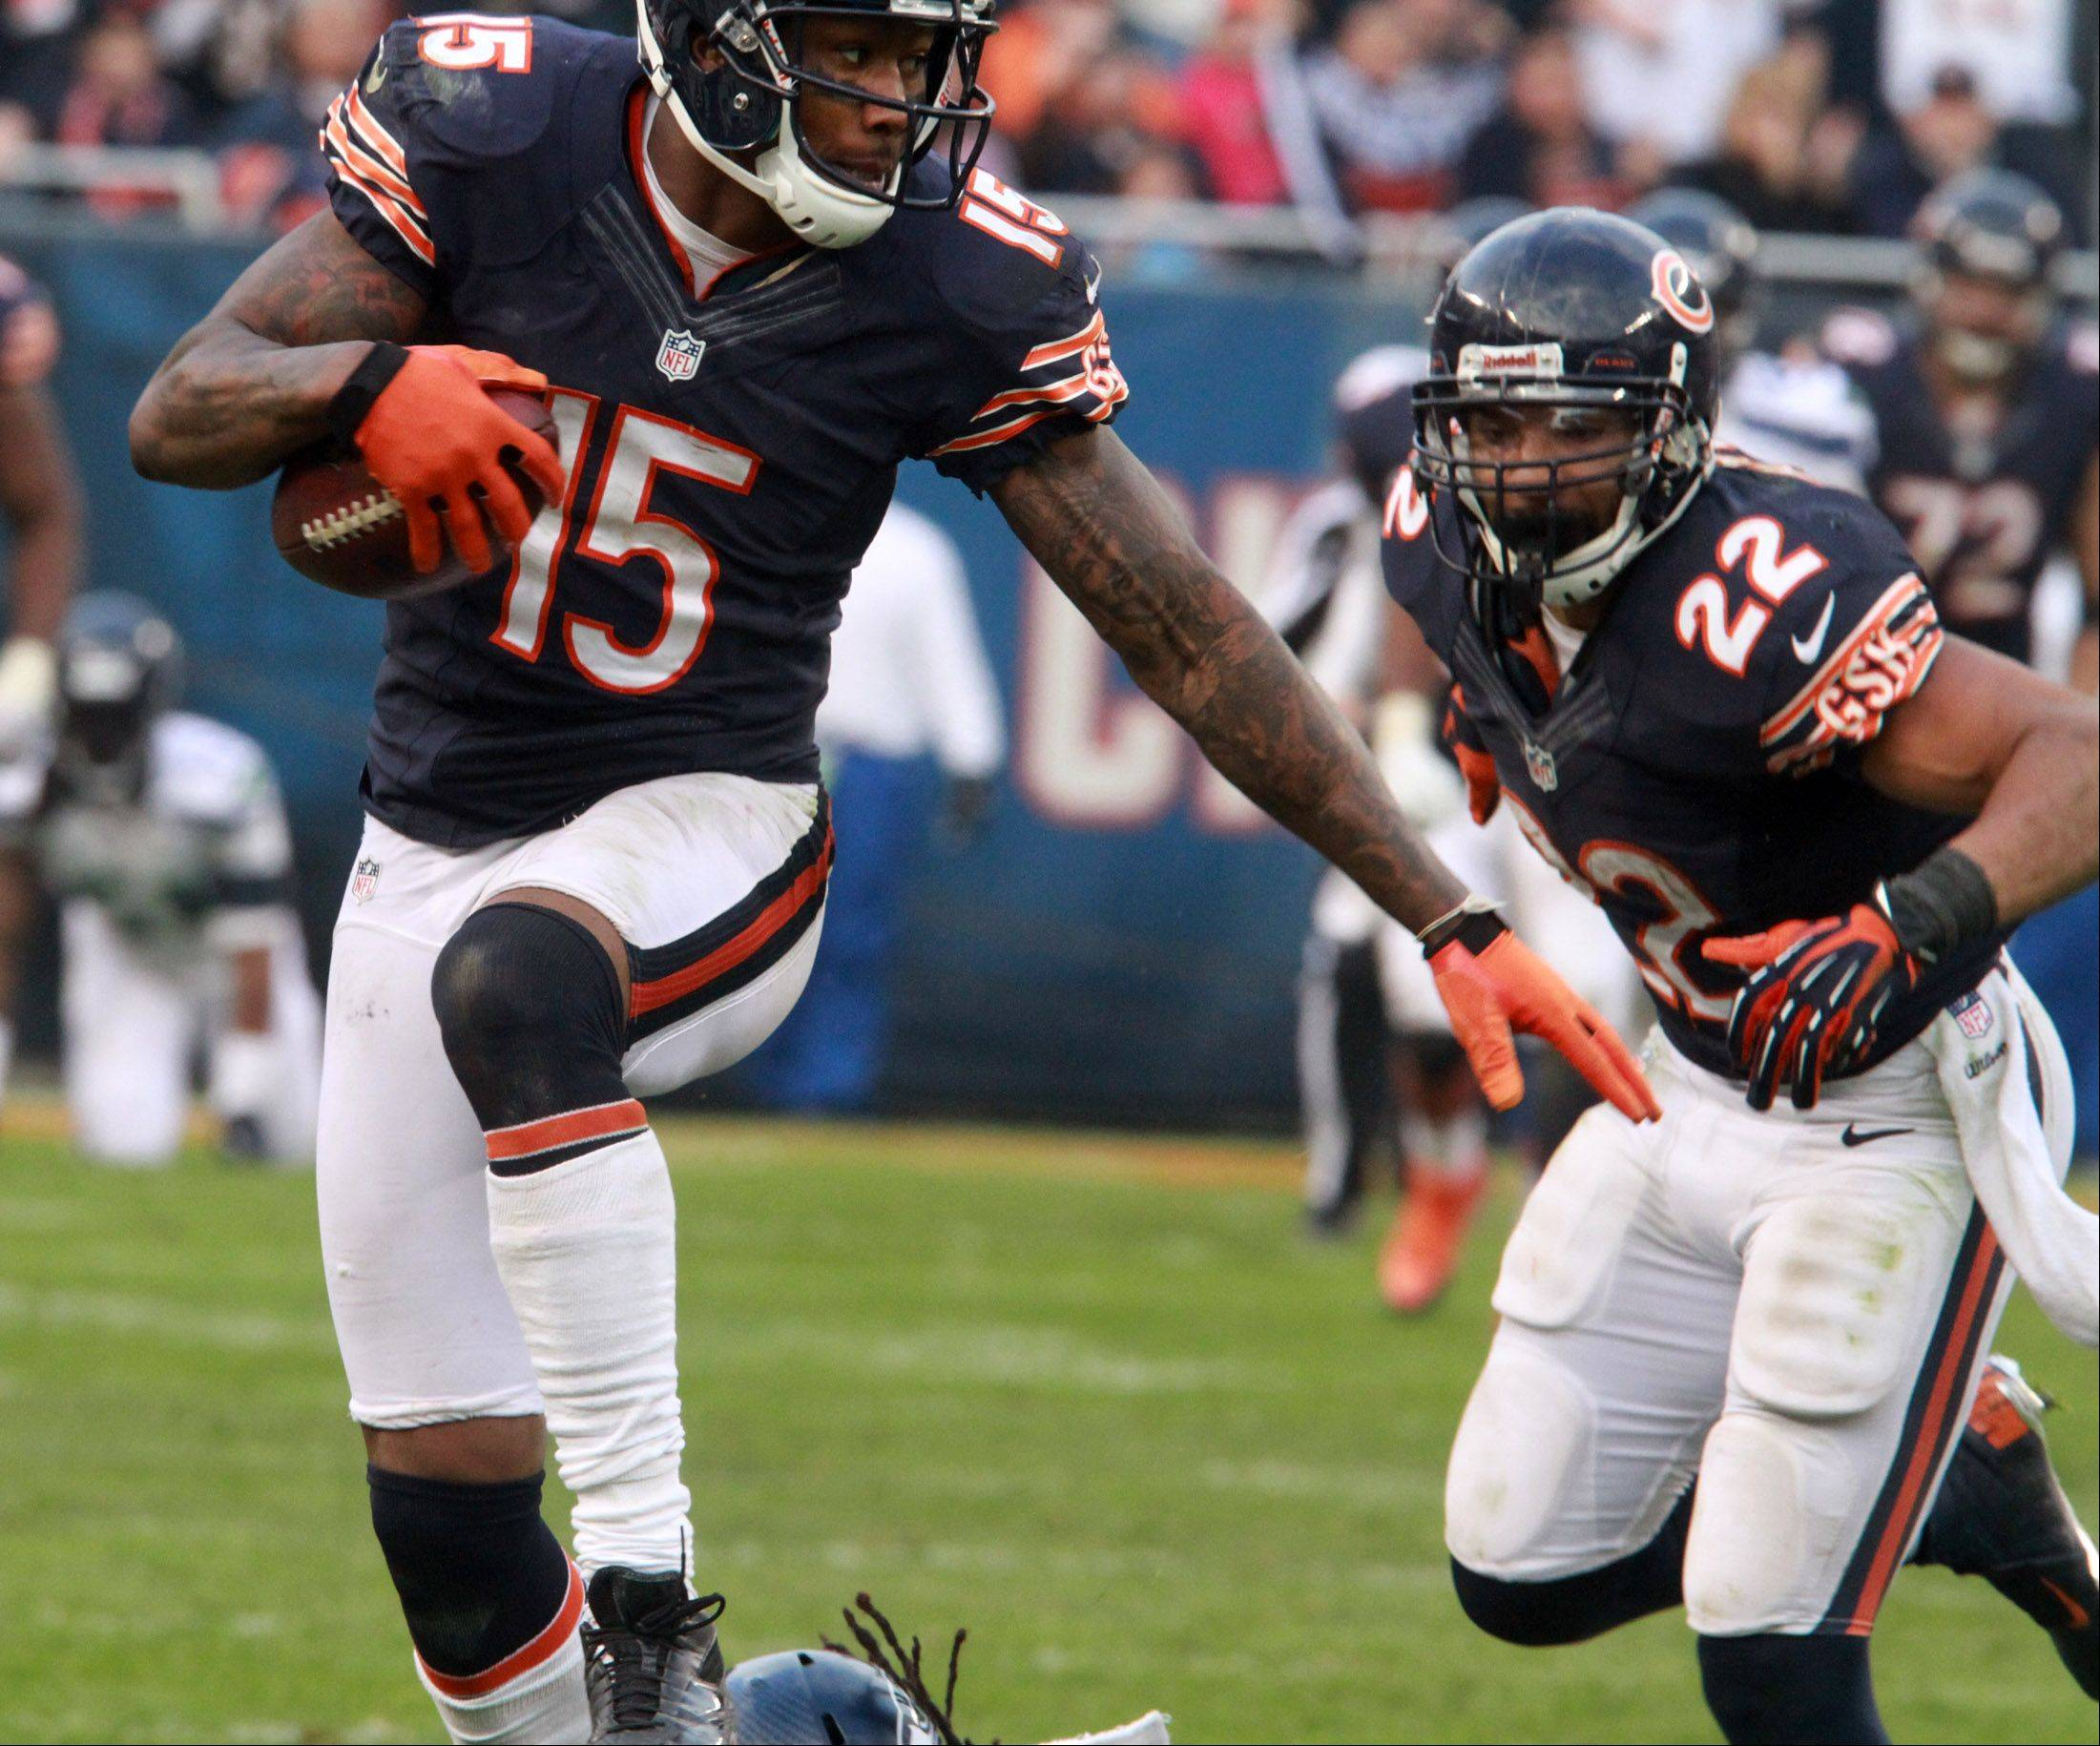 Bears' Brandon Marshall on target for opener